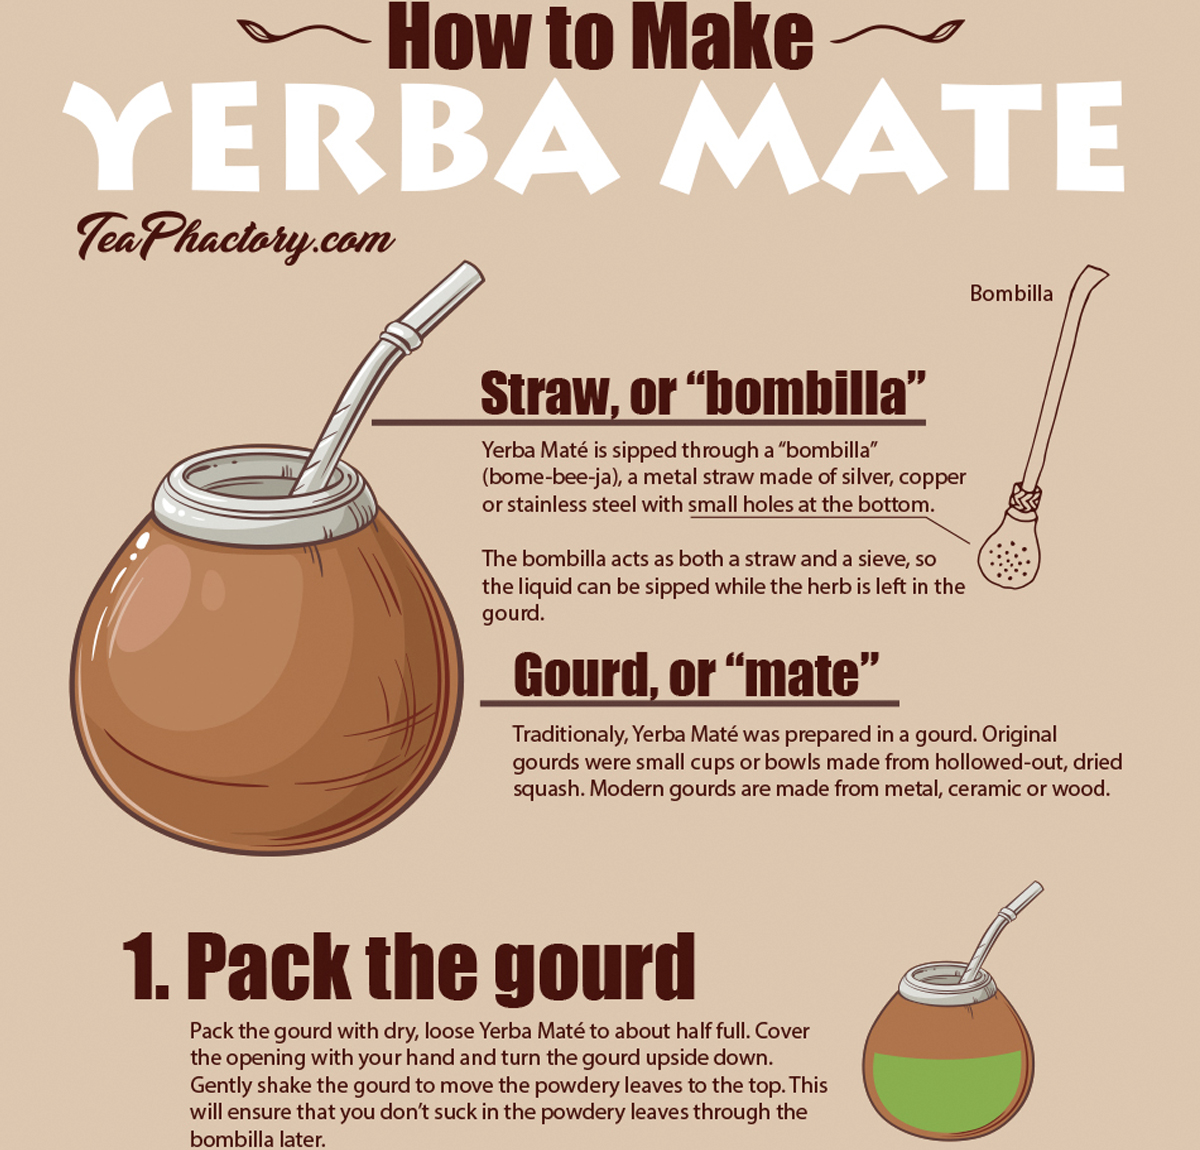 How to Make Yerbe Mate Digital Infographic and Print Poster